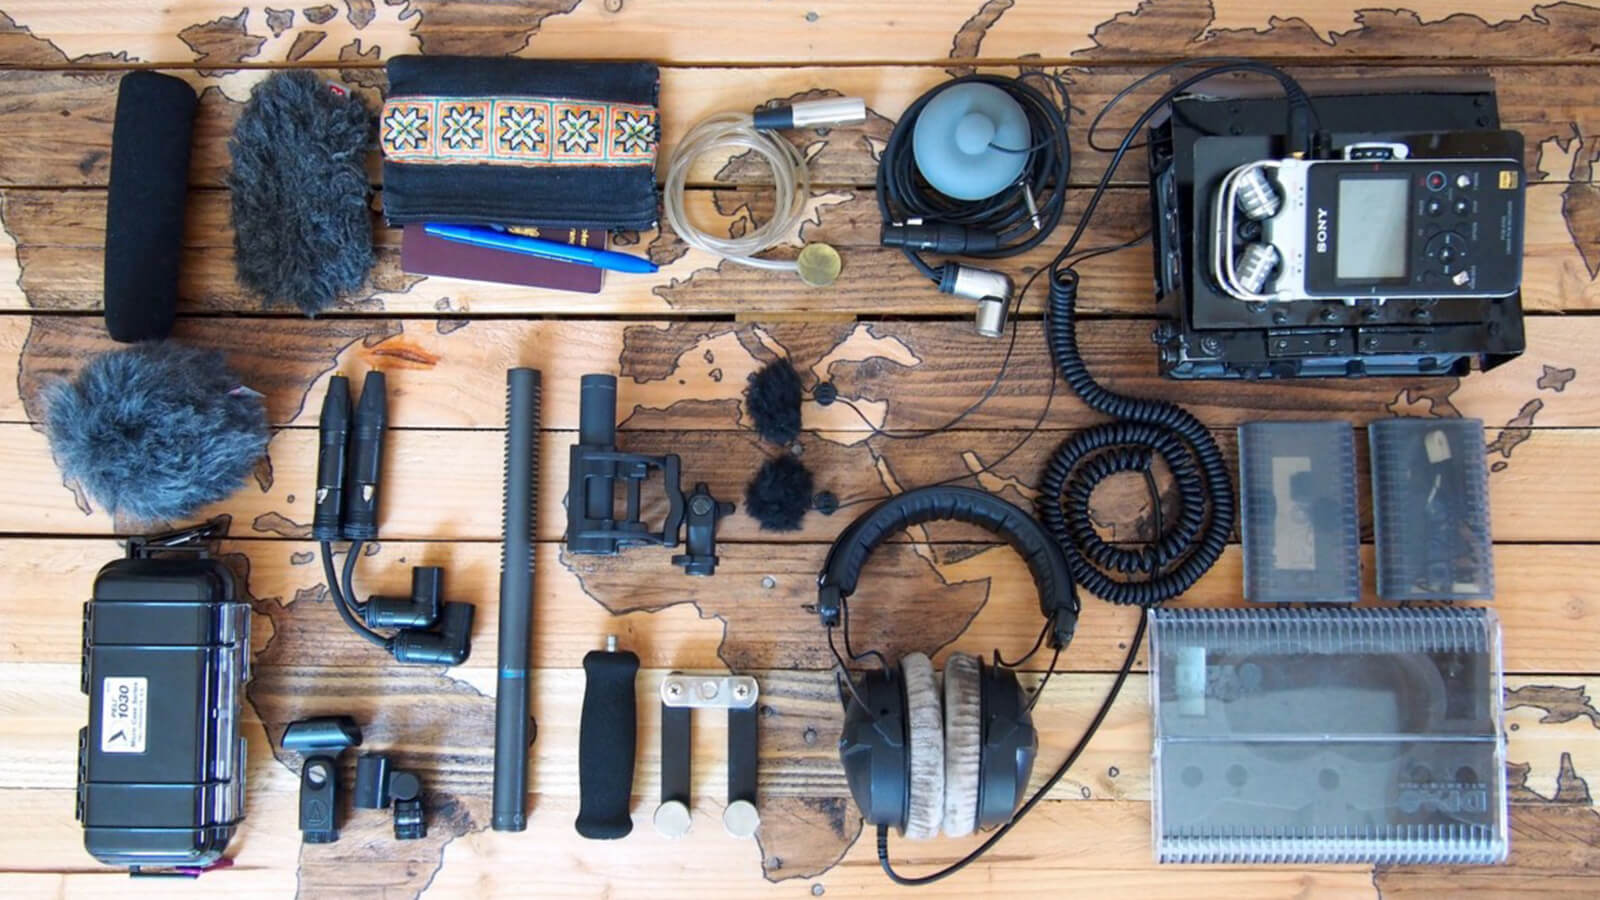 image of Charlie Atanasyan's field sound recording gear for capturing ambiences